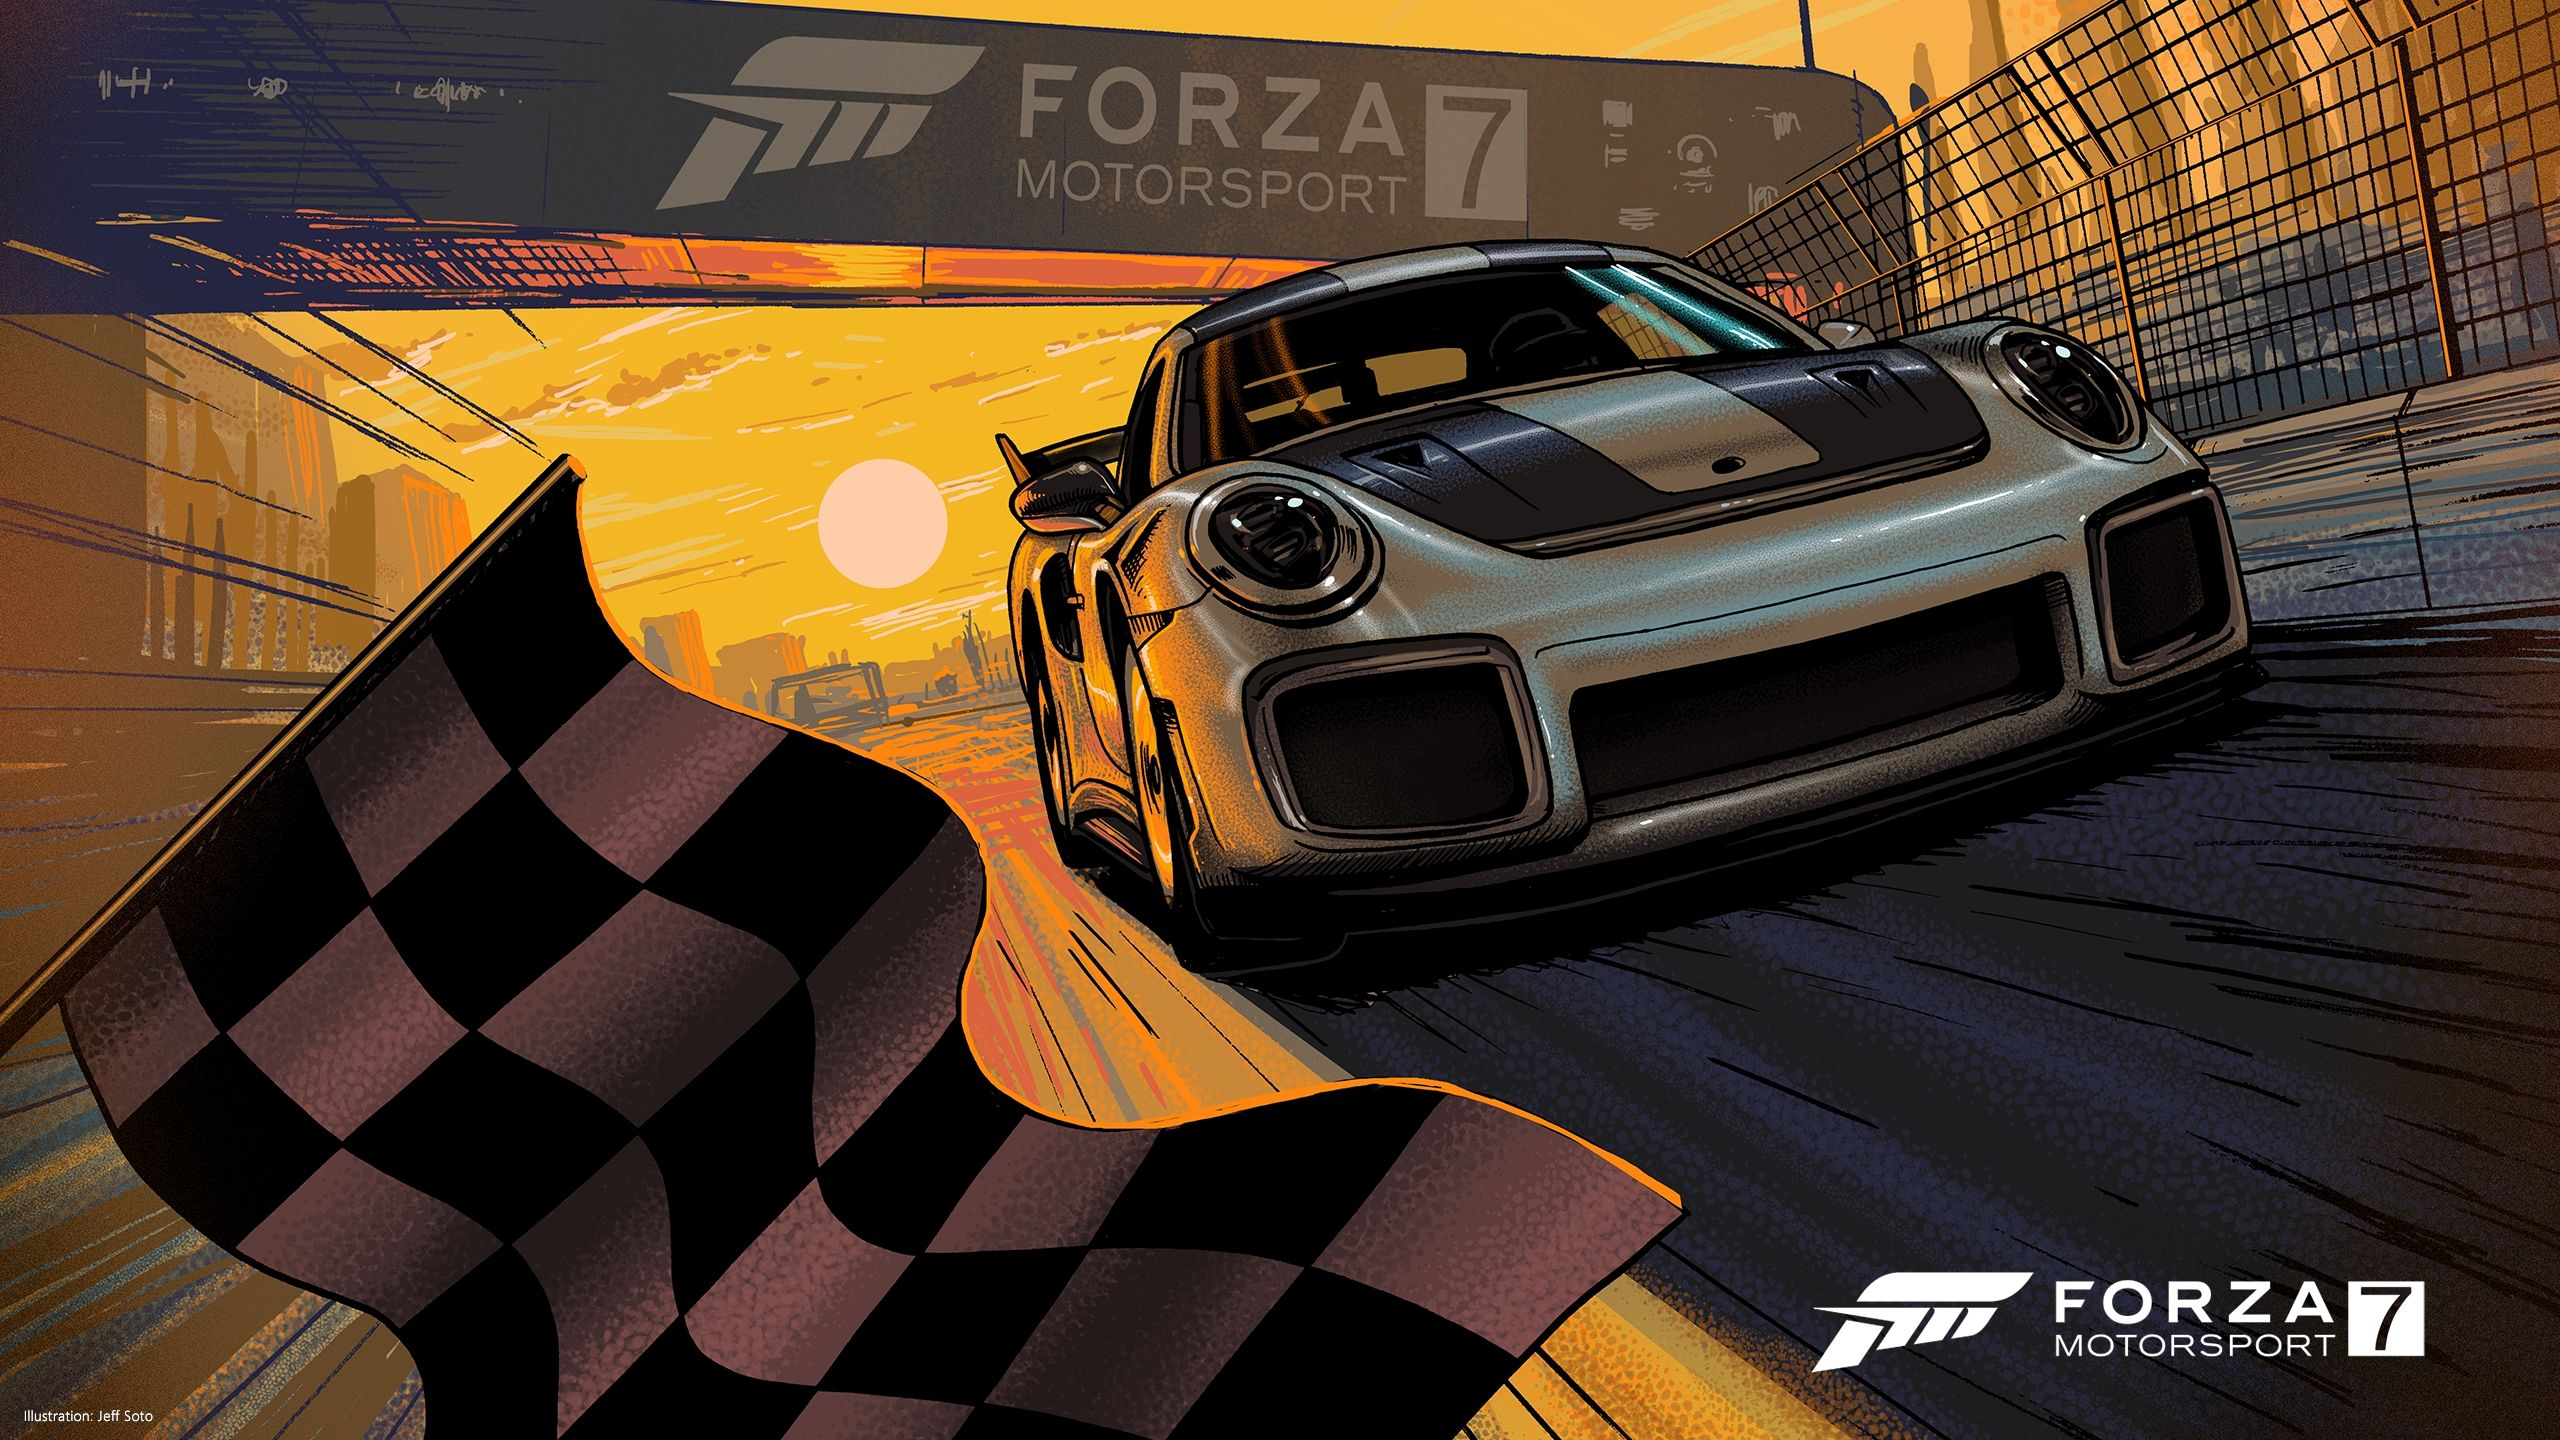 Forza Motorsport 7 Wallpapers Top Free Forza Motorsport 7 Backgrounds Wallpaperaccess